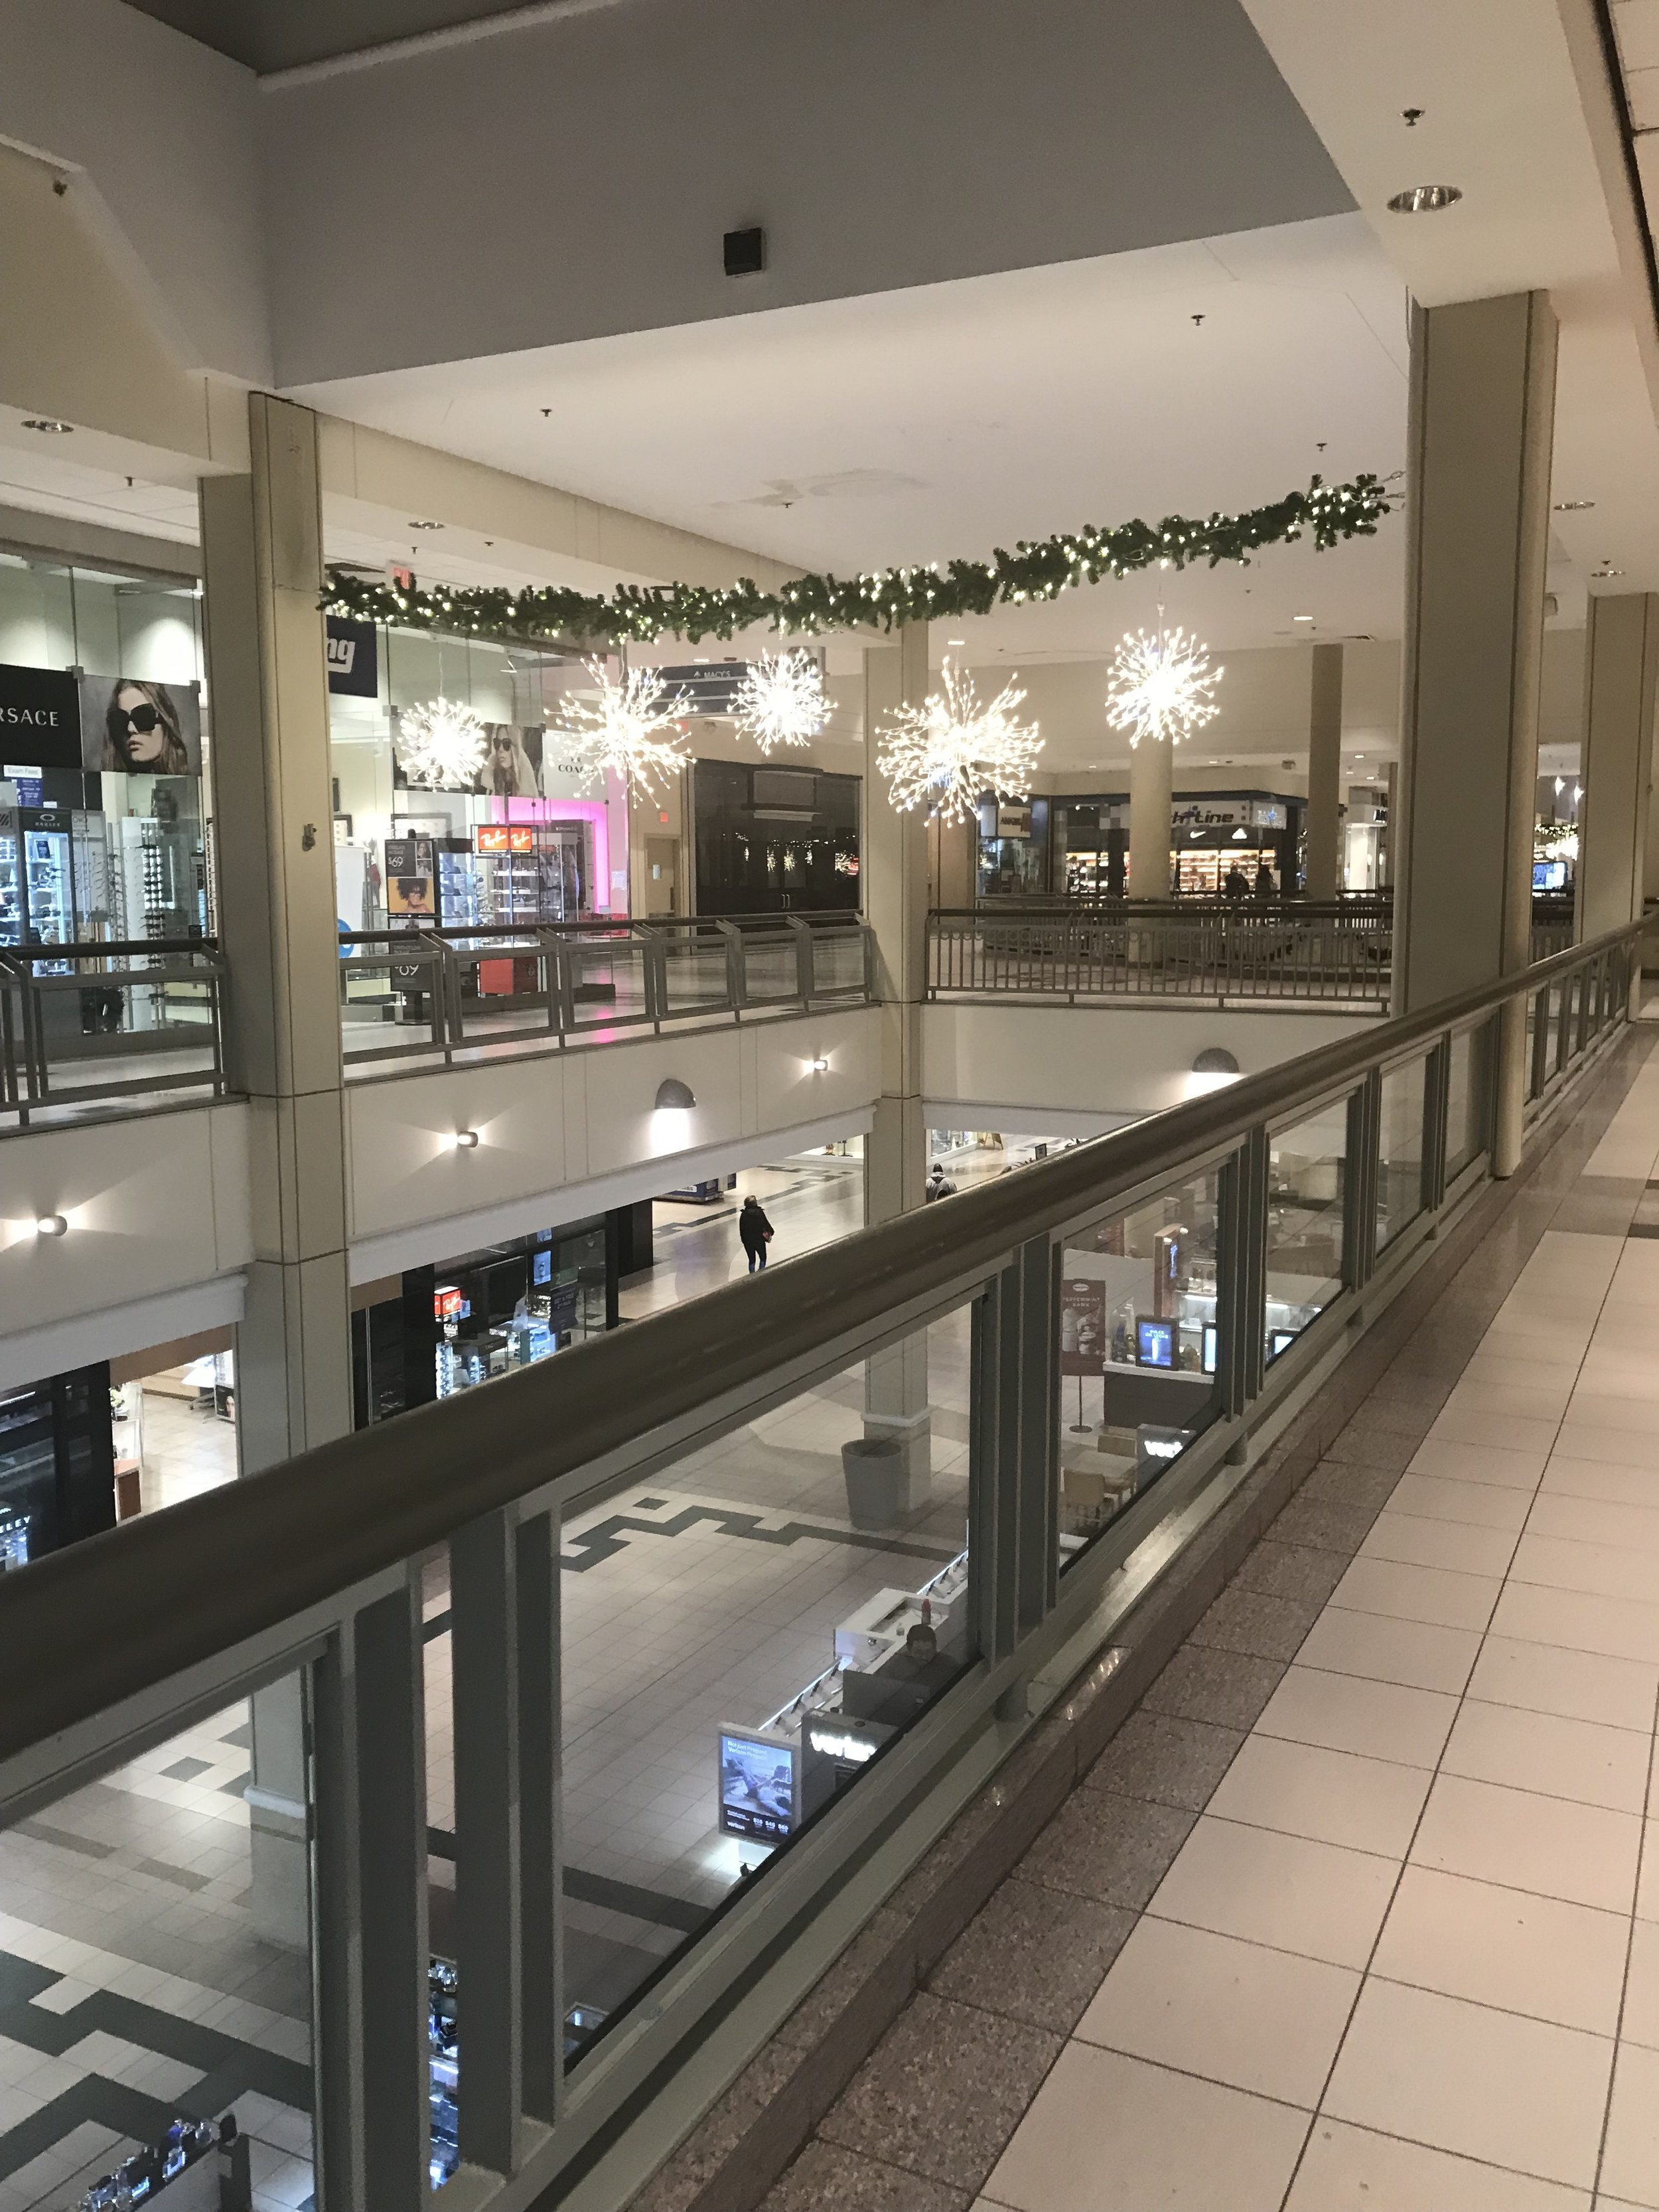 I recently went to the mall 2 days before Thanksgiving and it was pretty empty. One can only wish retail stores were like this on Thanksgiving Day